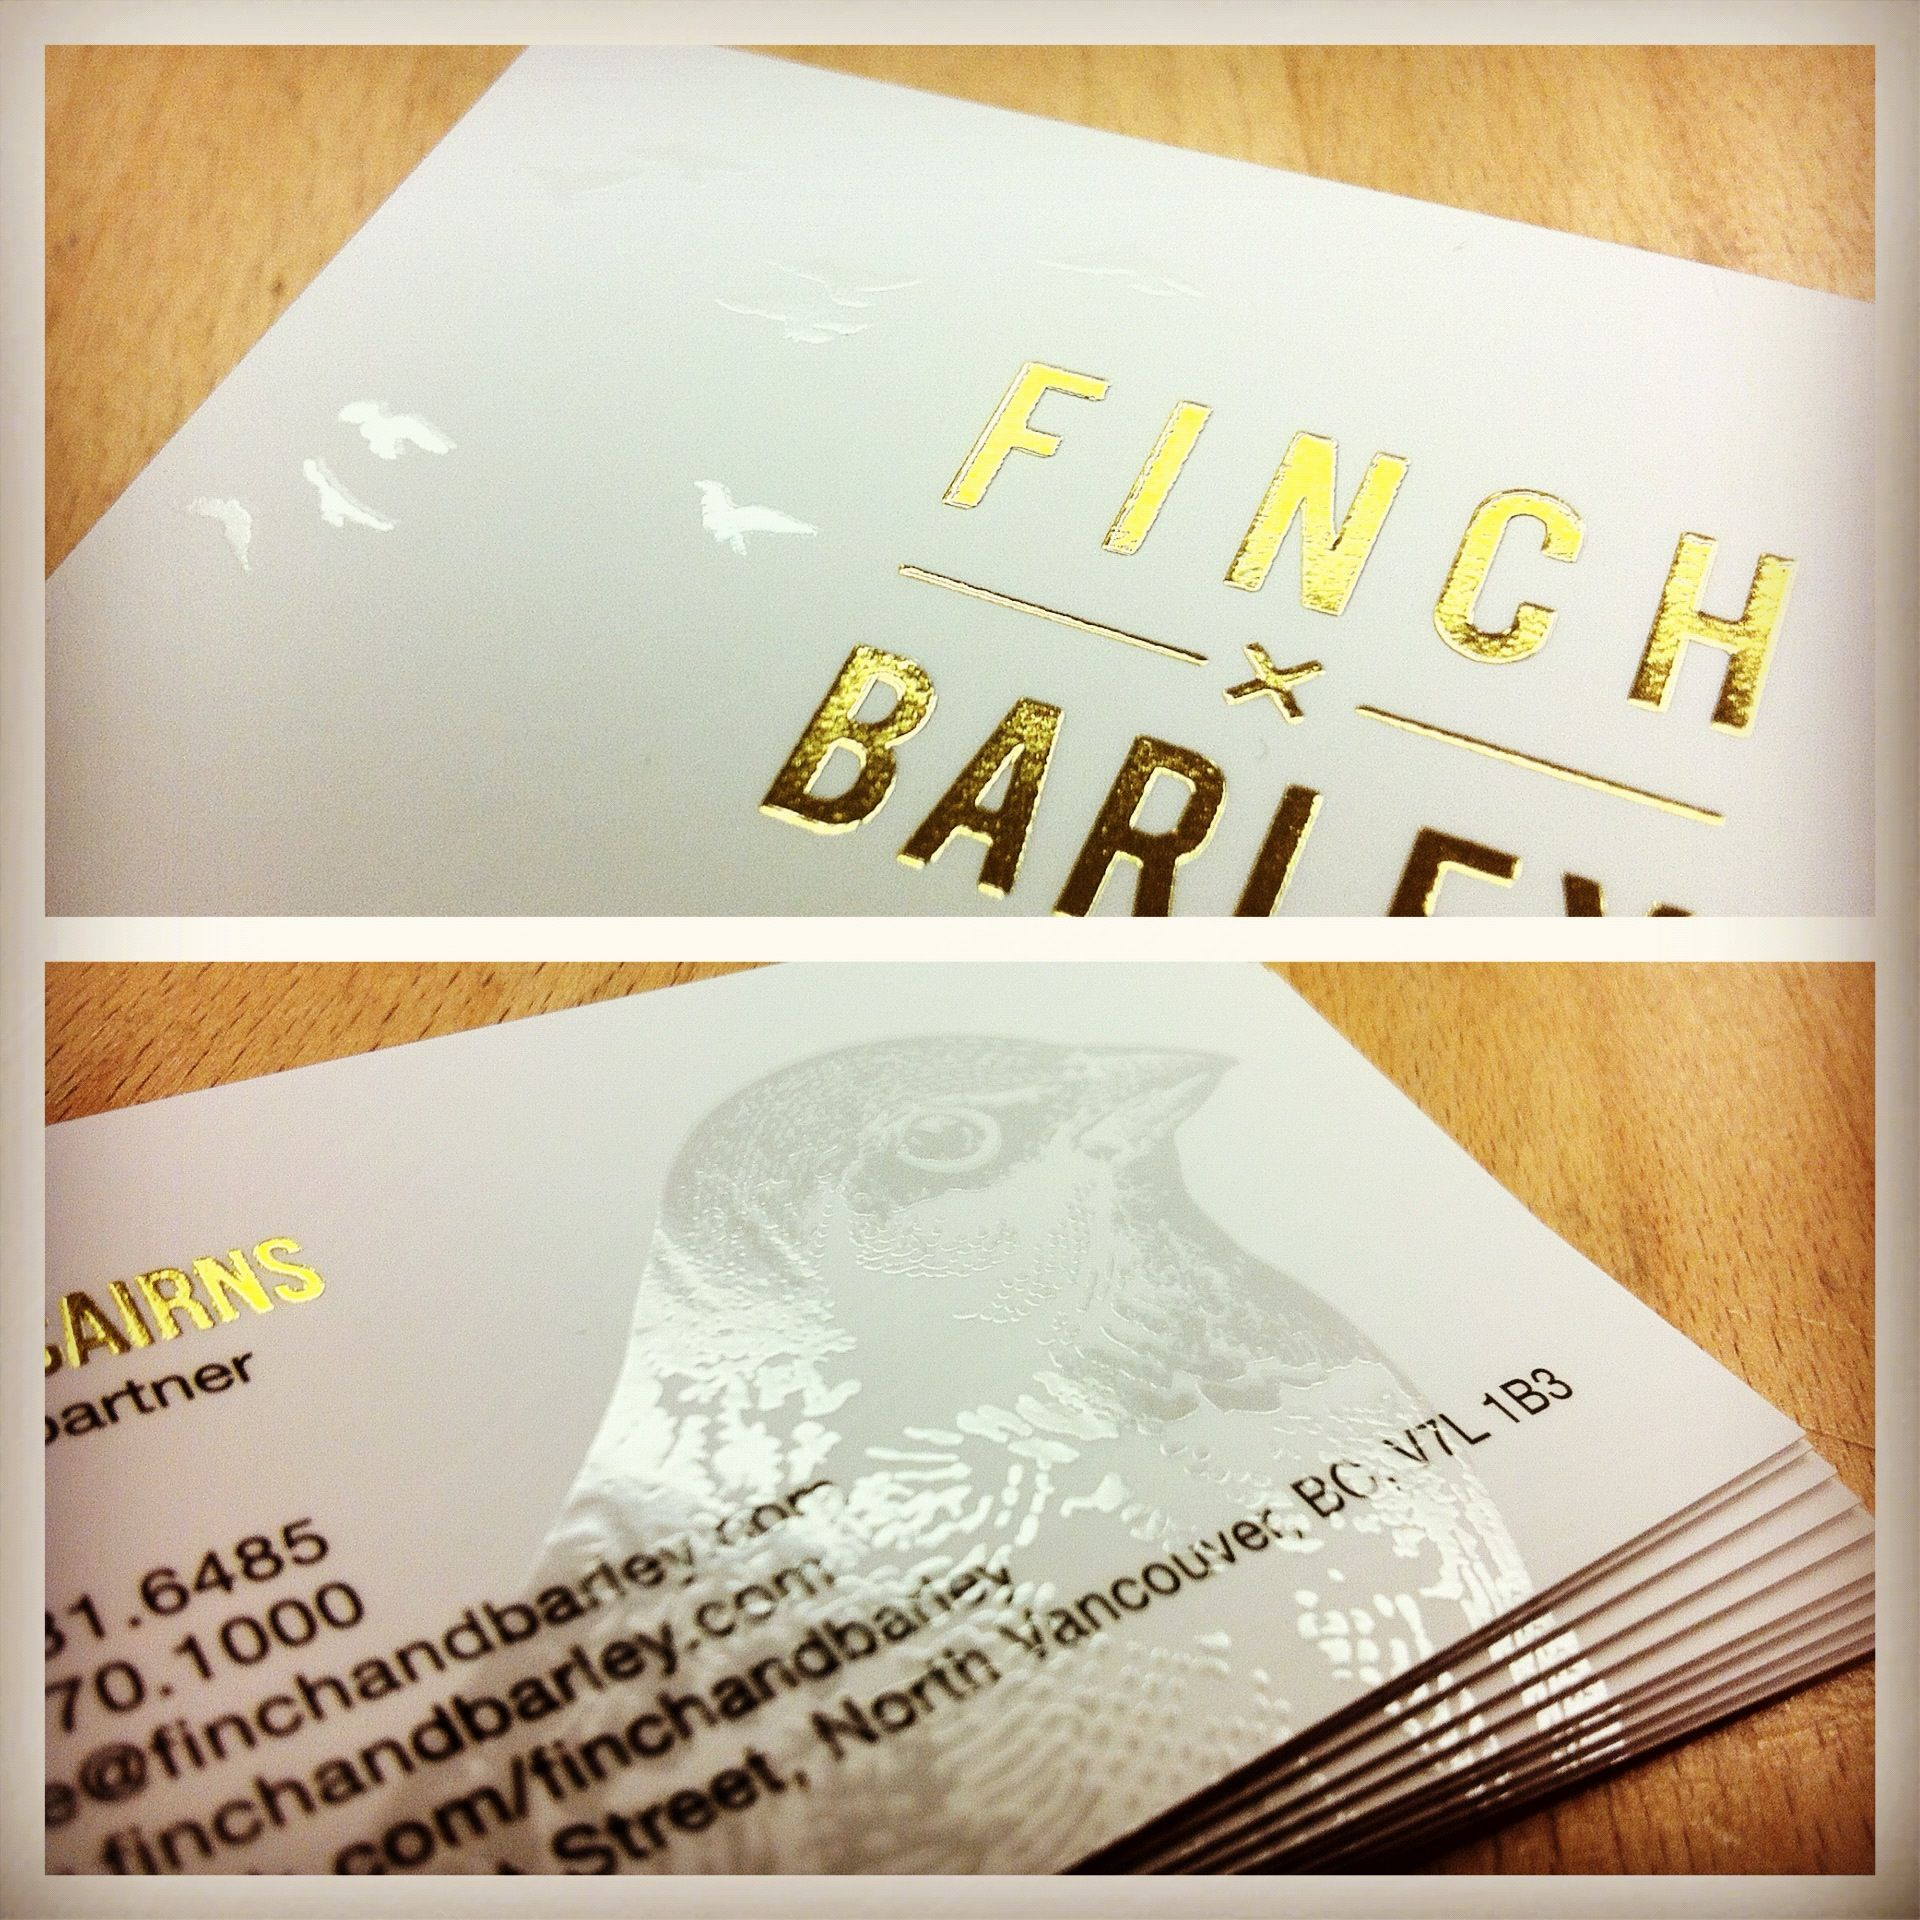 white lies jewelry business card printed using premium offset on